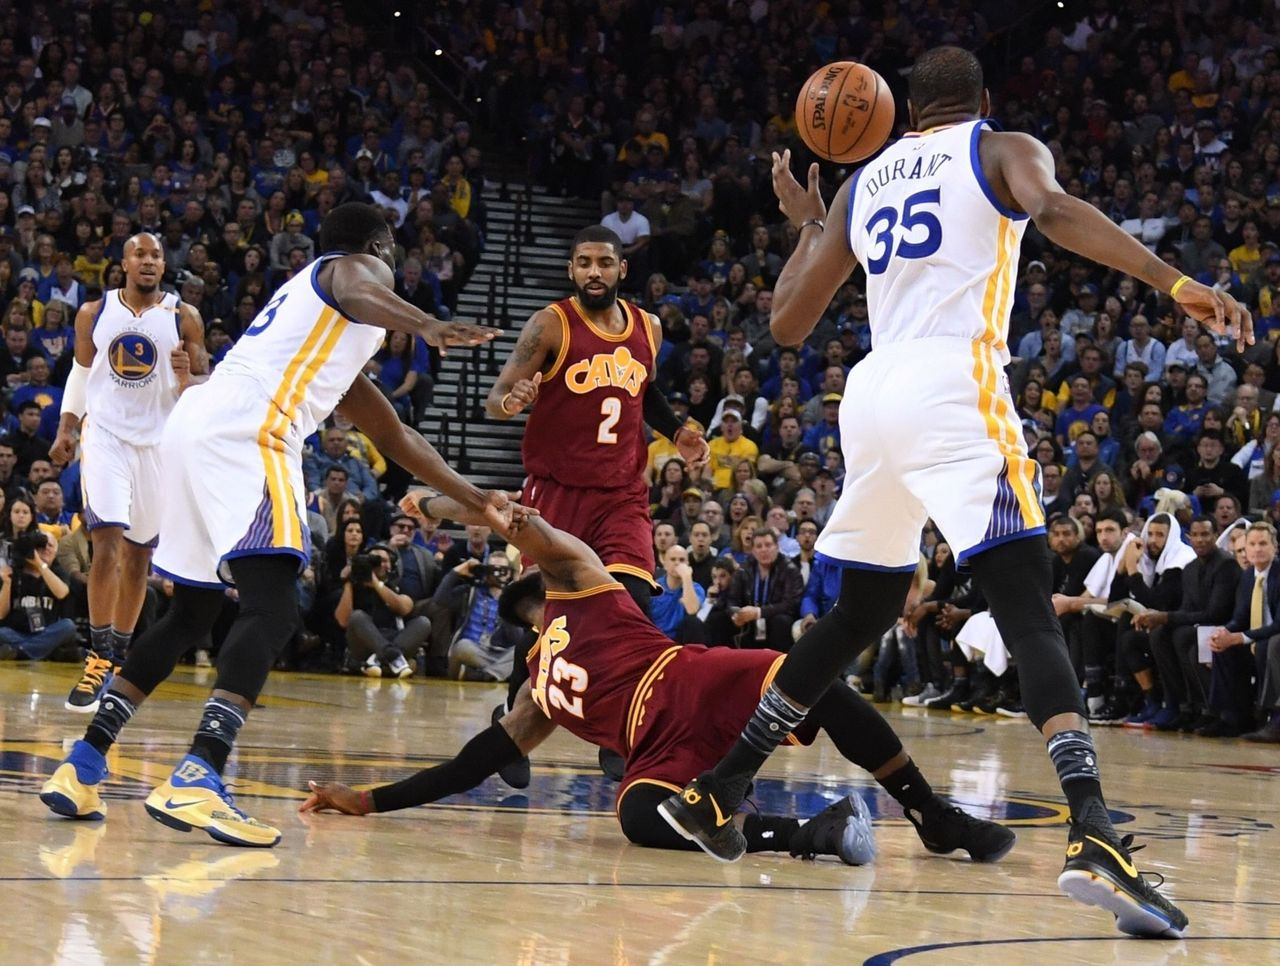 Cropped 2017 01 17t015253z 1490429197 nocid rtrmadp 3 nba cleveland cavaliers at golden state warriors